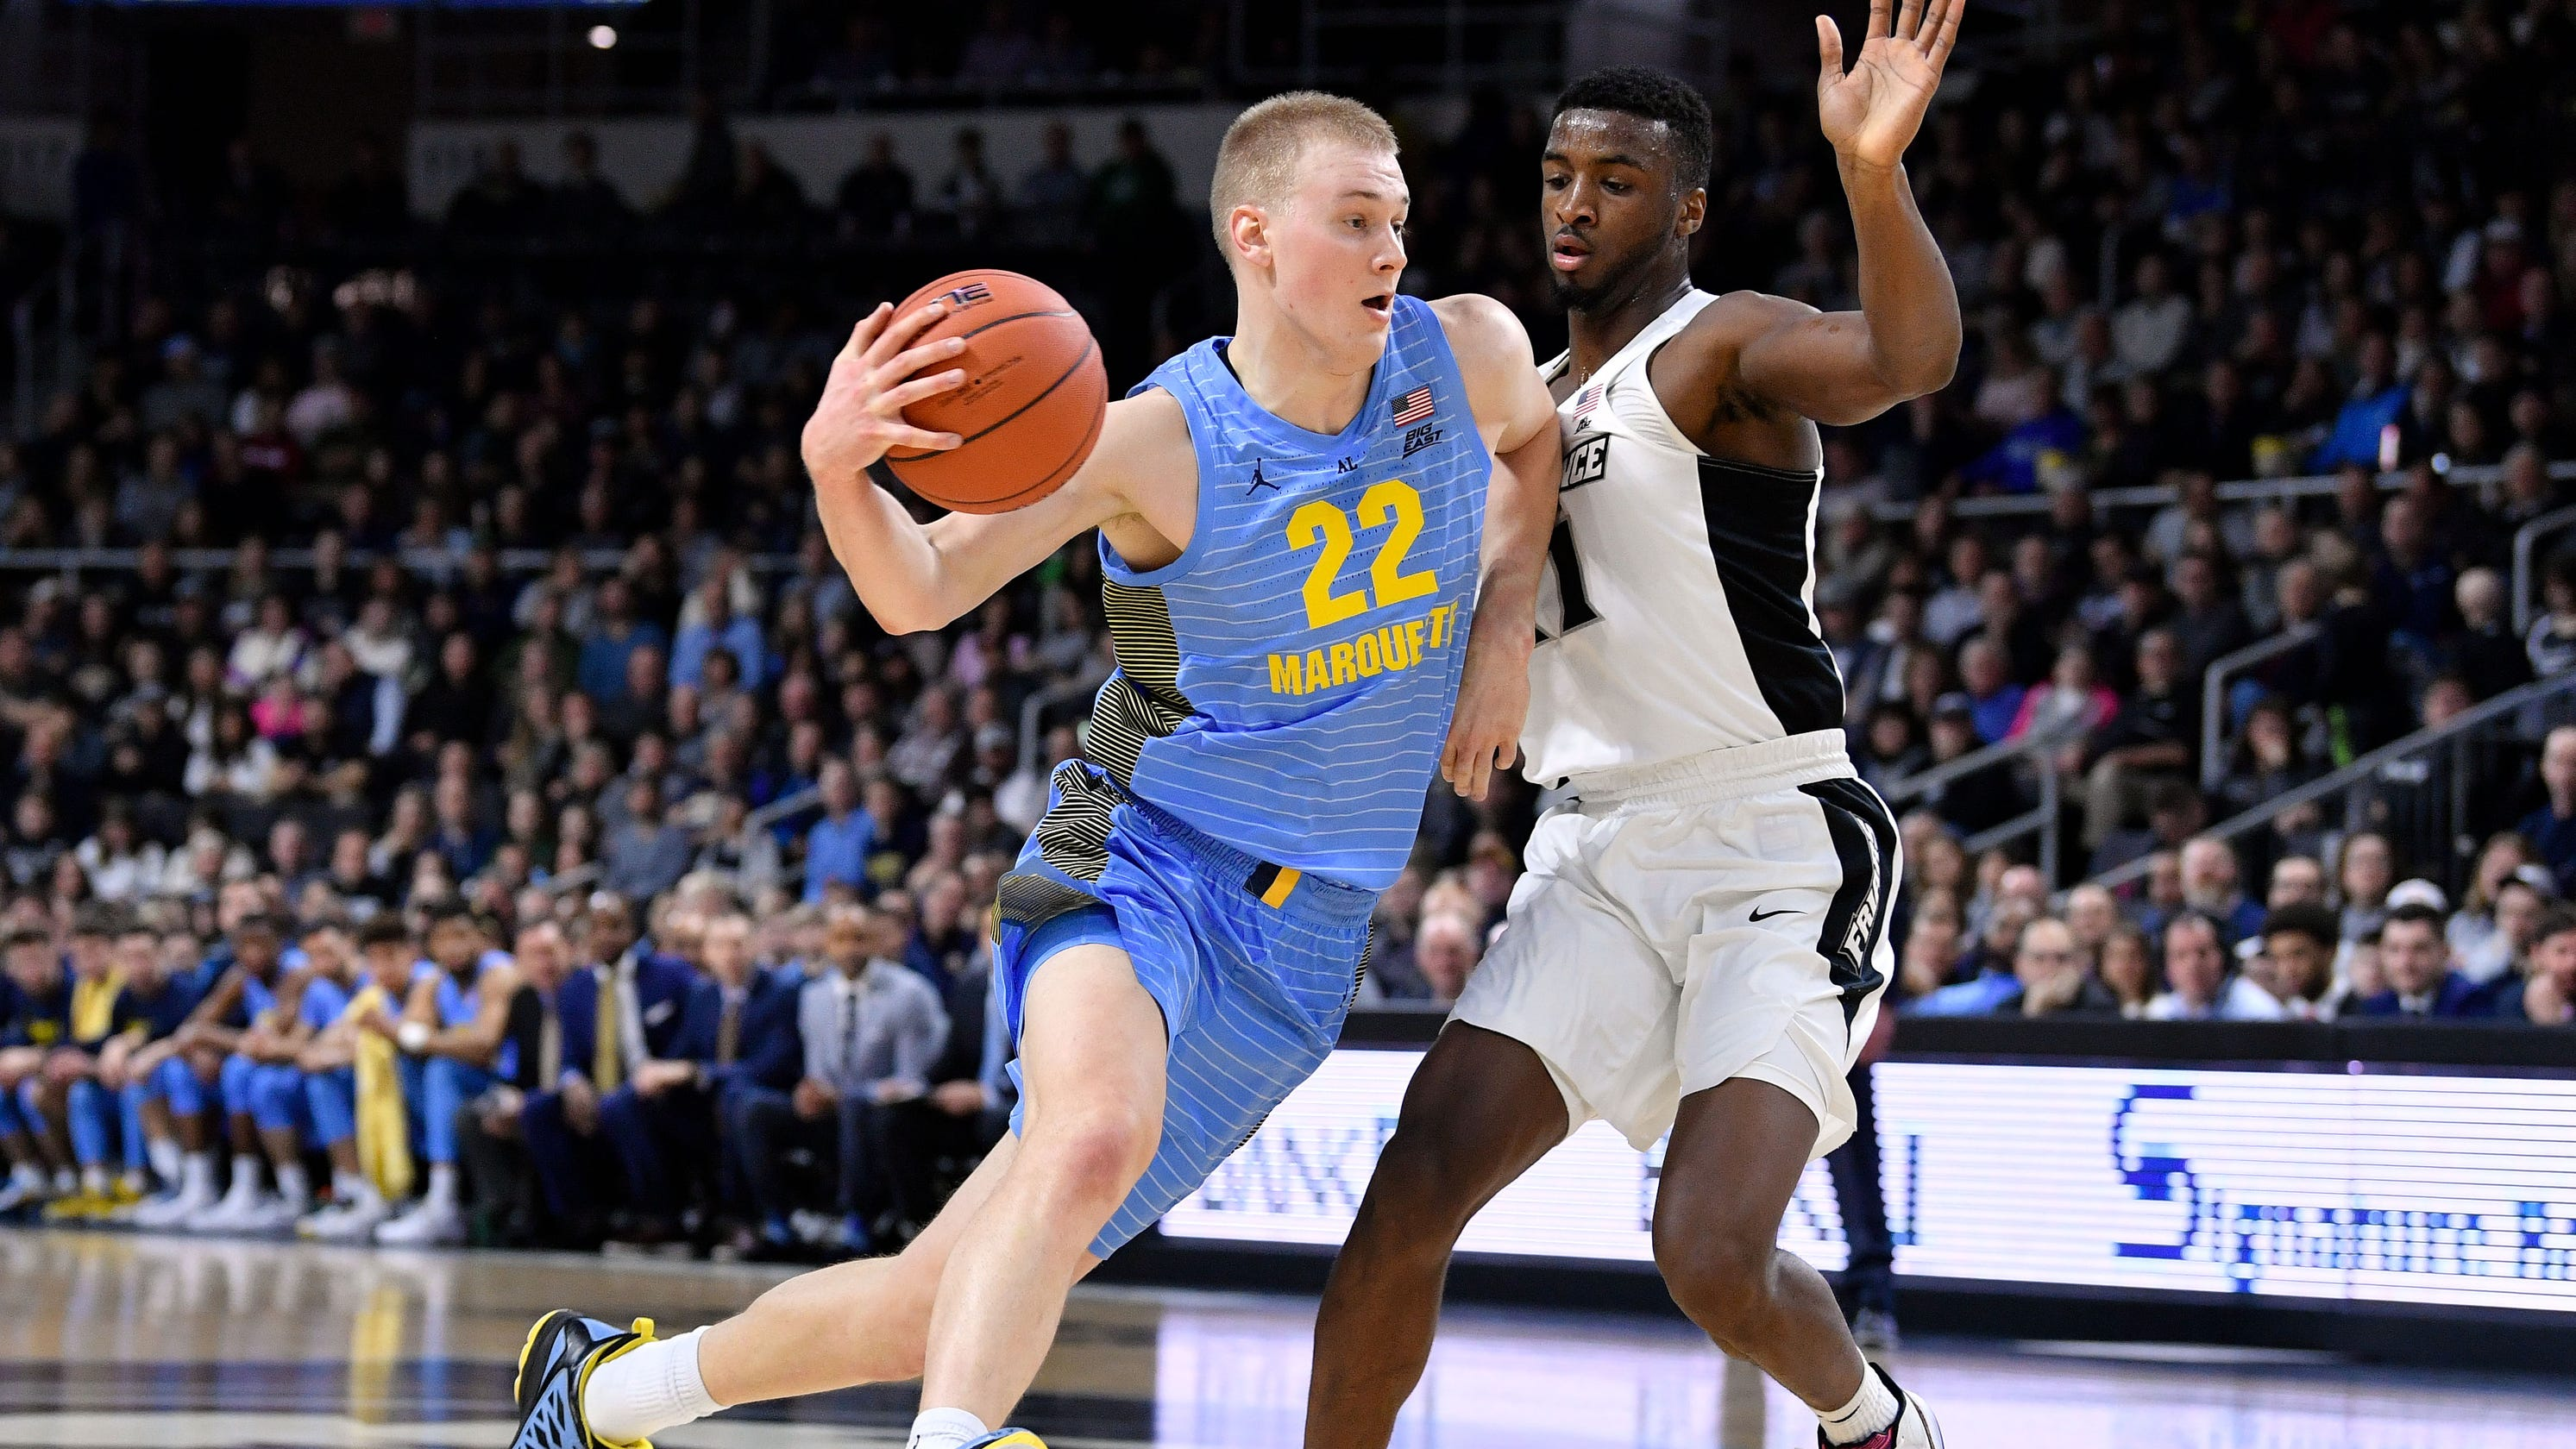 Msu Basketball Schedule 2020-21 Michigan State basketball adds Joey Hauser: What it means for MSU